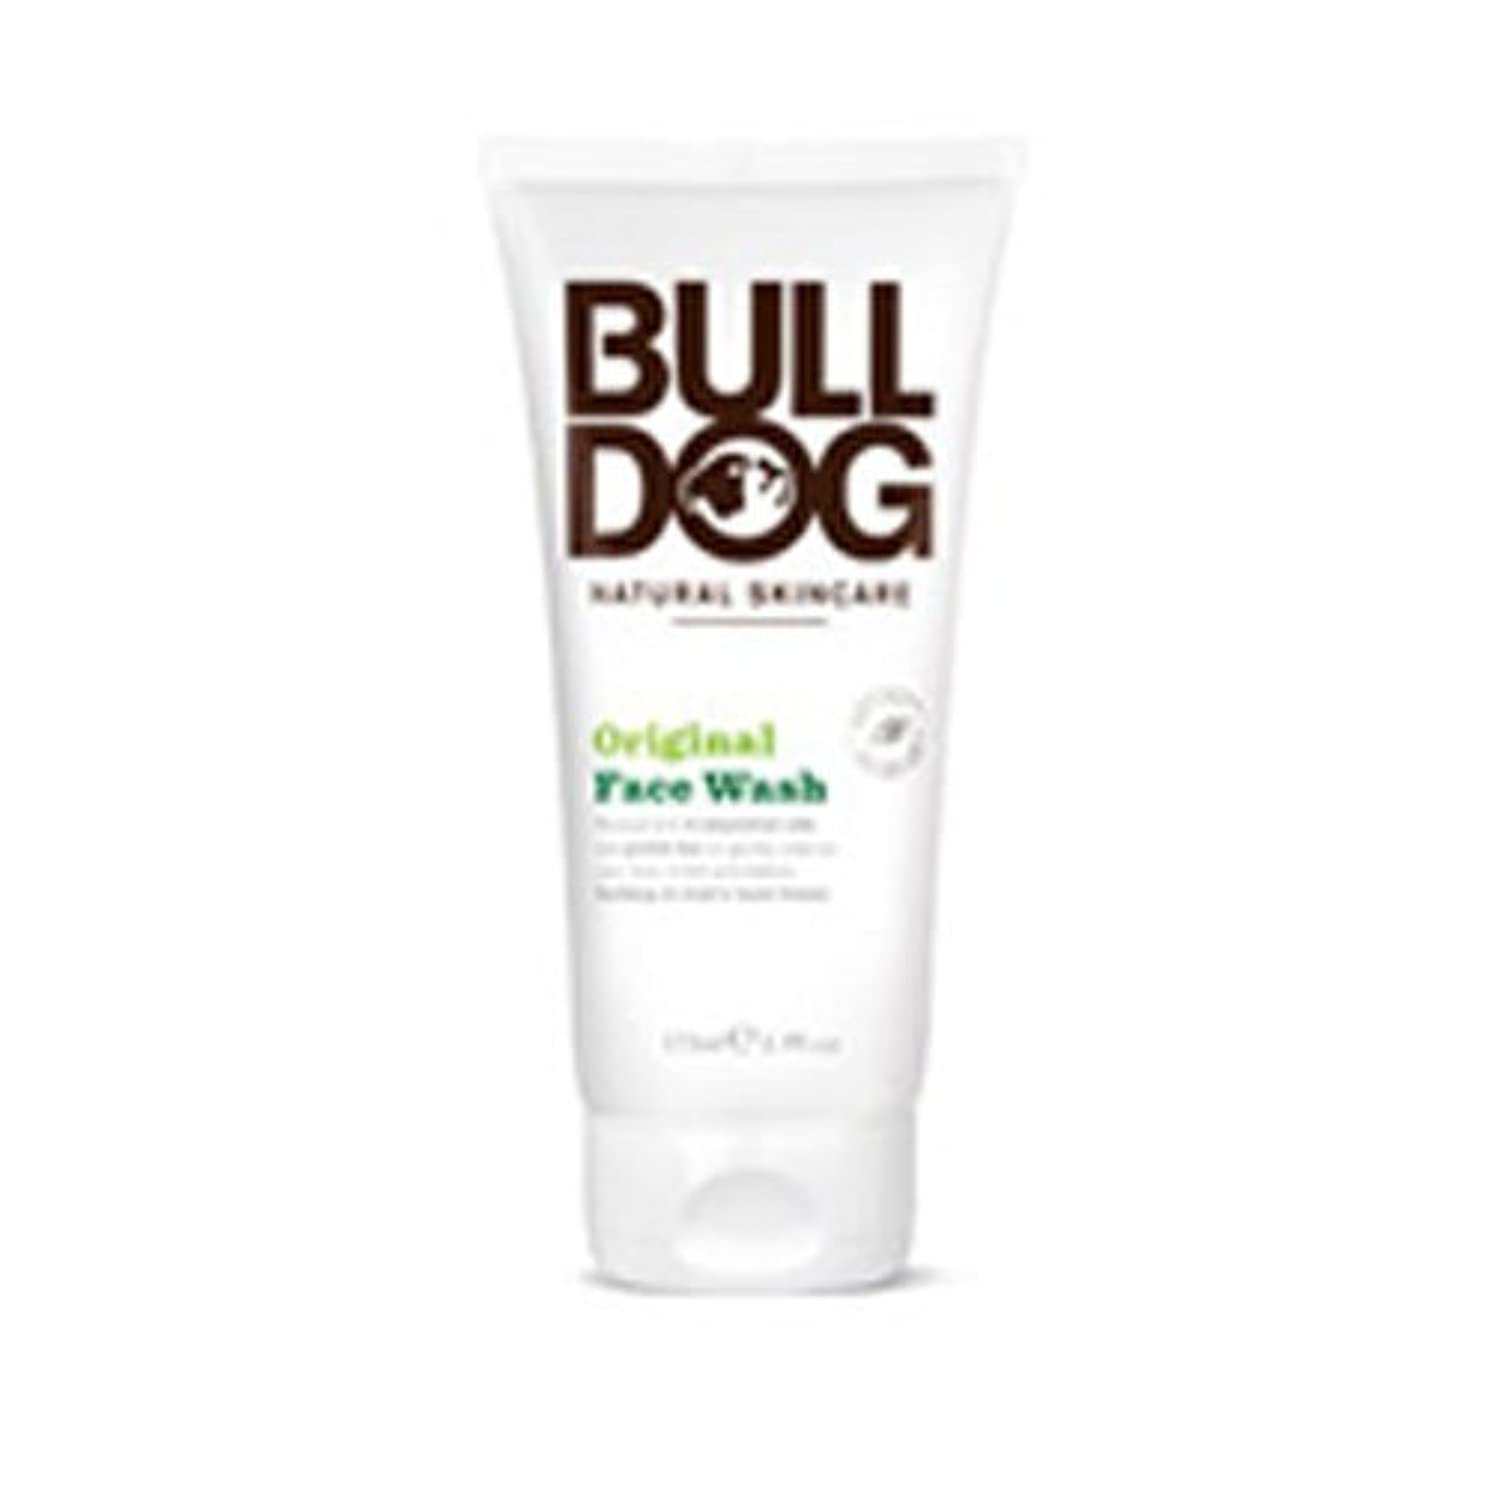 状況宴会ねじれ海外直送品Original Face Wash, 5.9 oz by Bulldog Natural Skincare